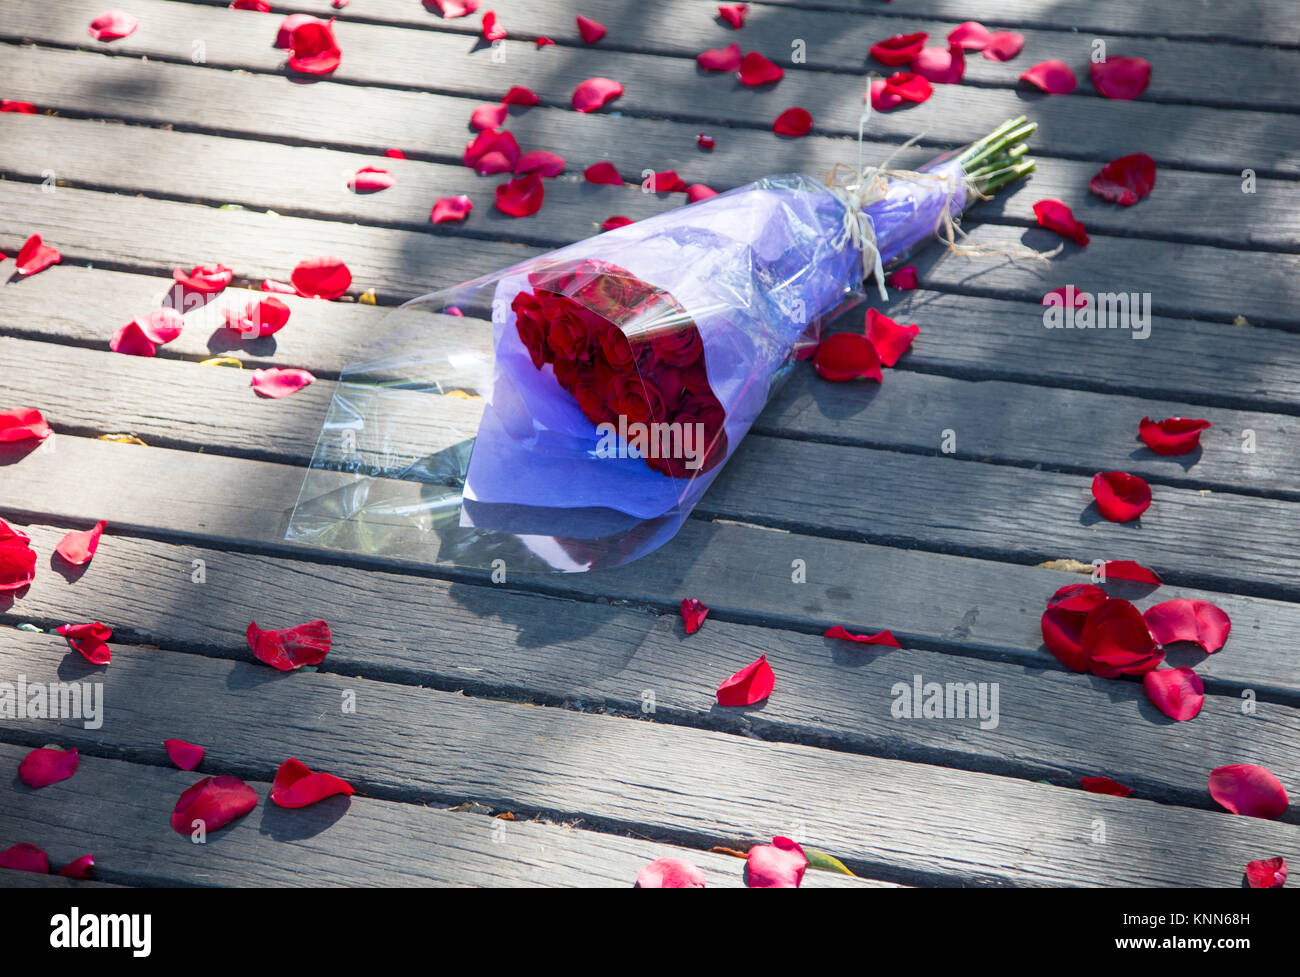 Bunch of red roses thrown to ground surrounded by red petals - Stock Image